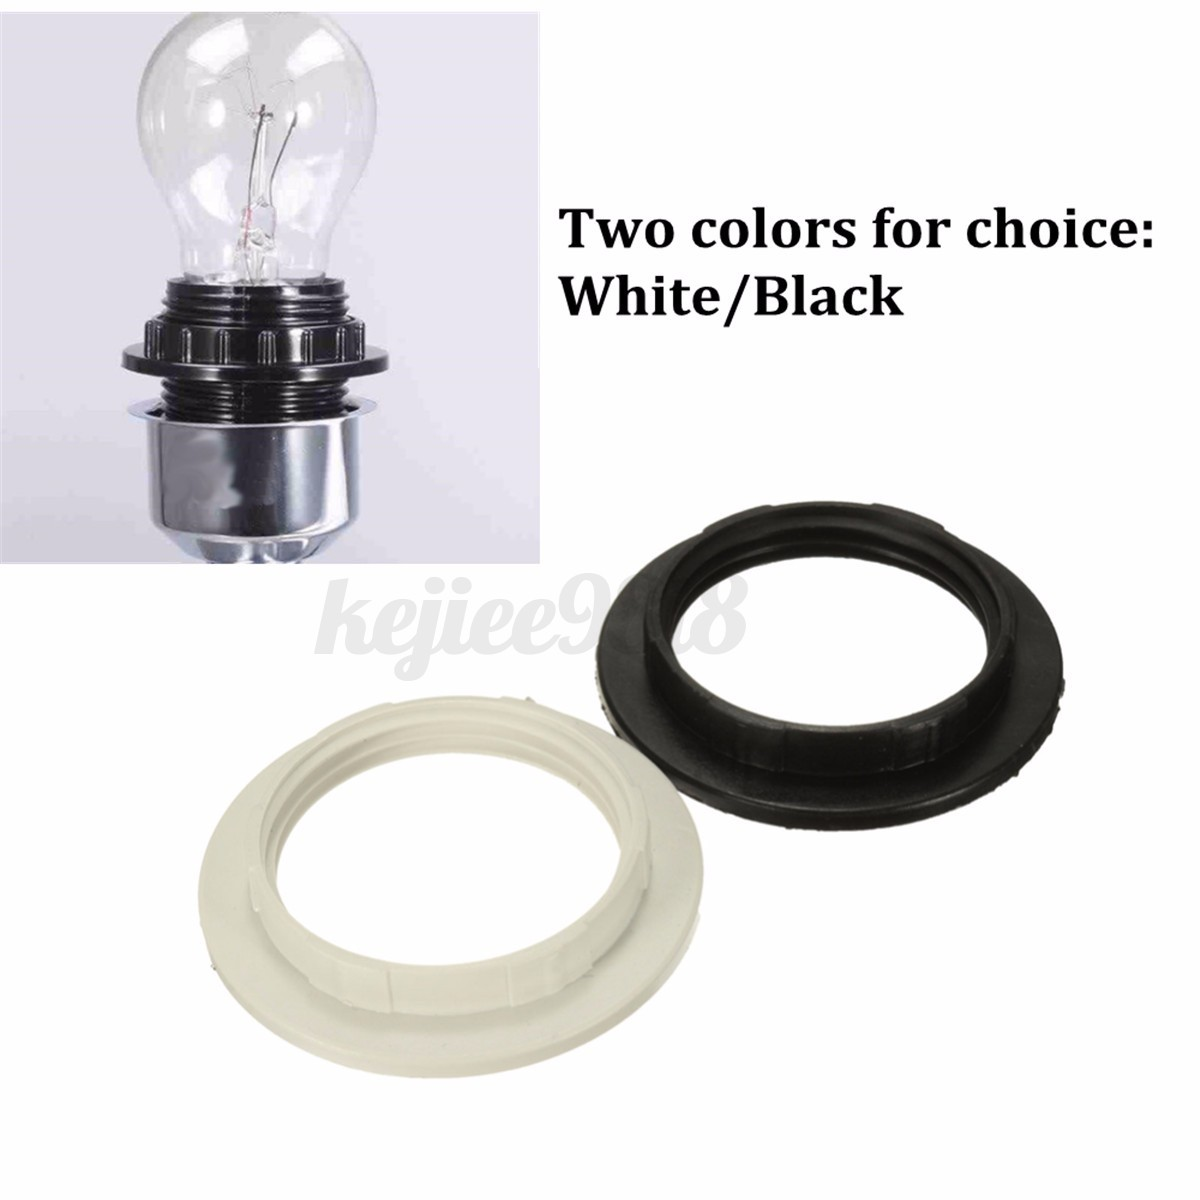 Black/White E27 Screw Lampshade Light Shade Collar Ring Adaptor ... for Electric Bulb Holder  104xkb